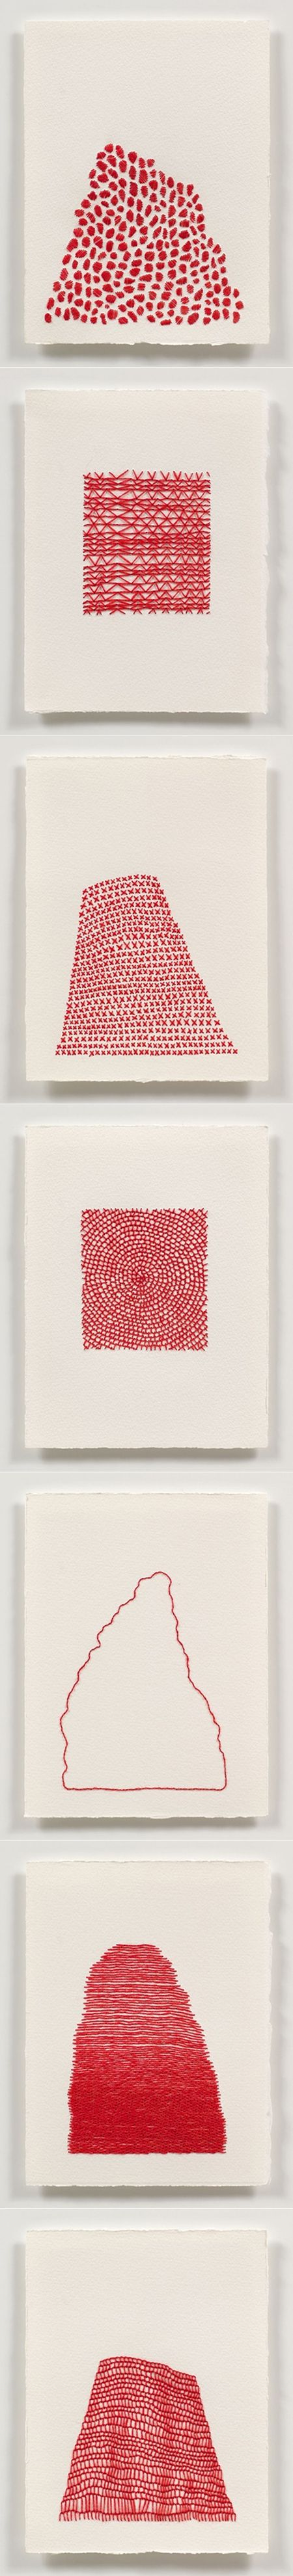 emily barletta - more embroidery on paper. so simple. so stunning. {damn, why didn't i think of this.}